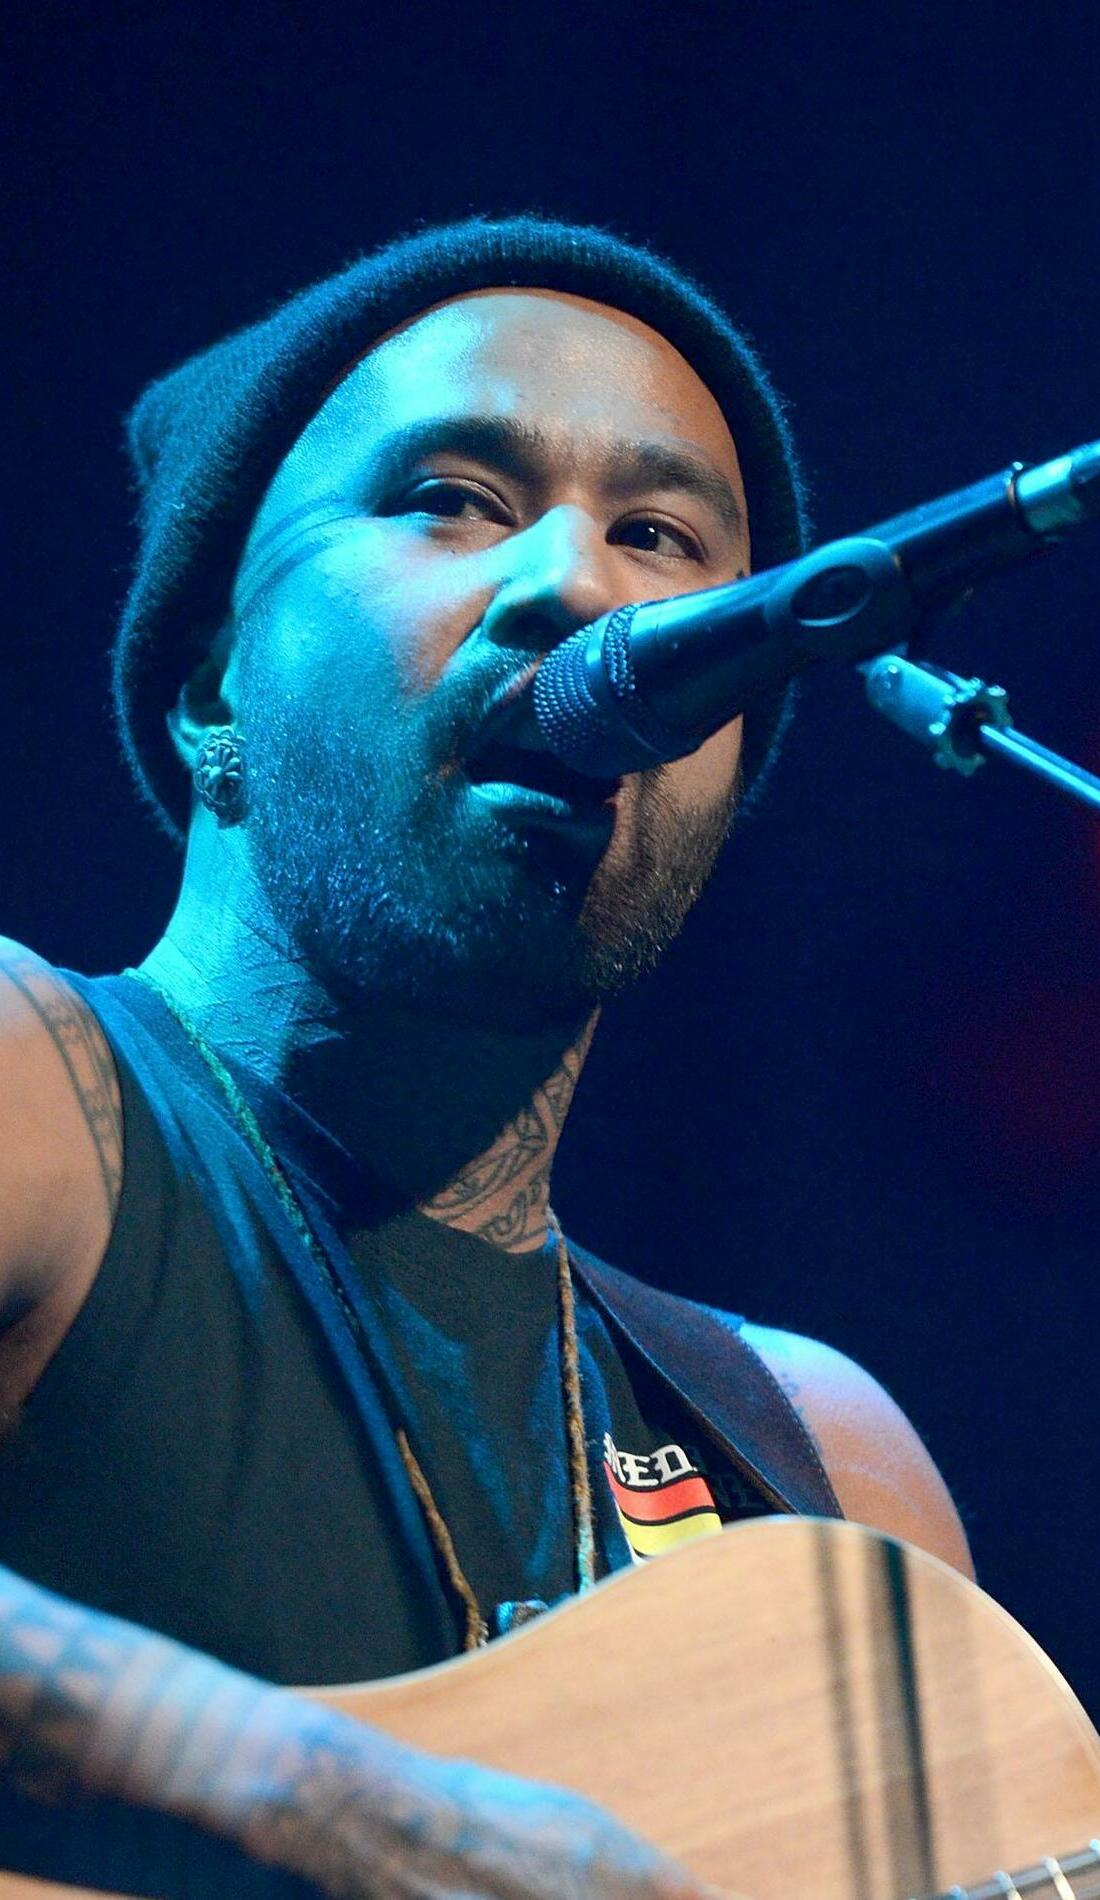 A Nahko and Medicine for the People live event